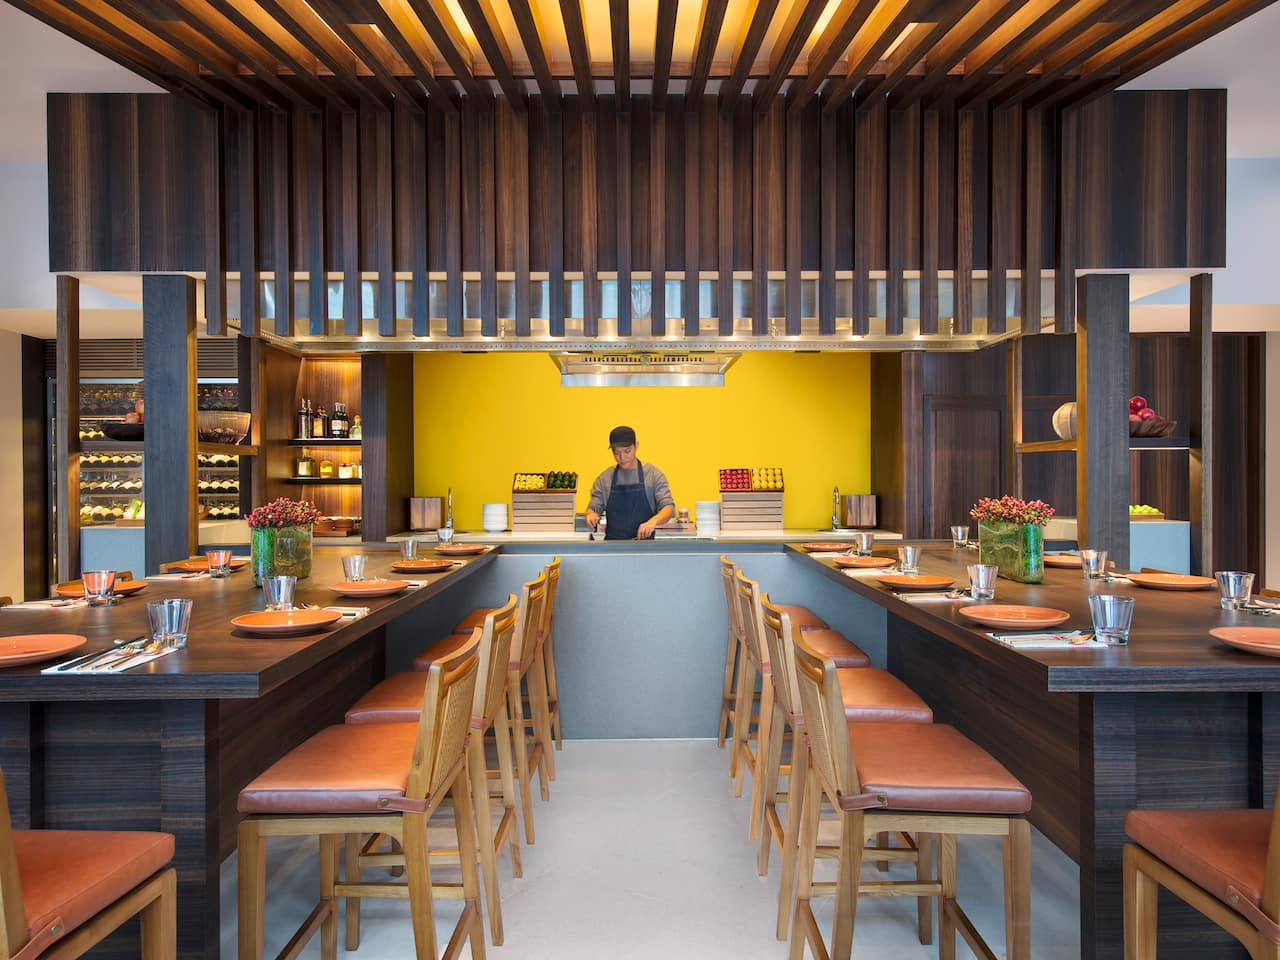 The Teppan Chef's Table Restaurant Andaz Singapore